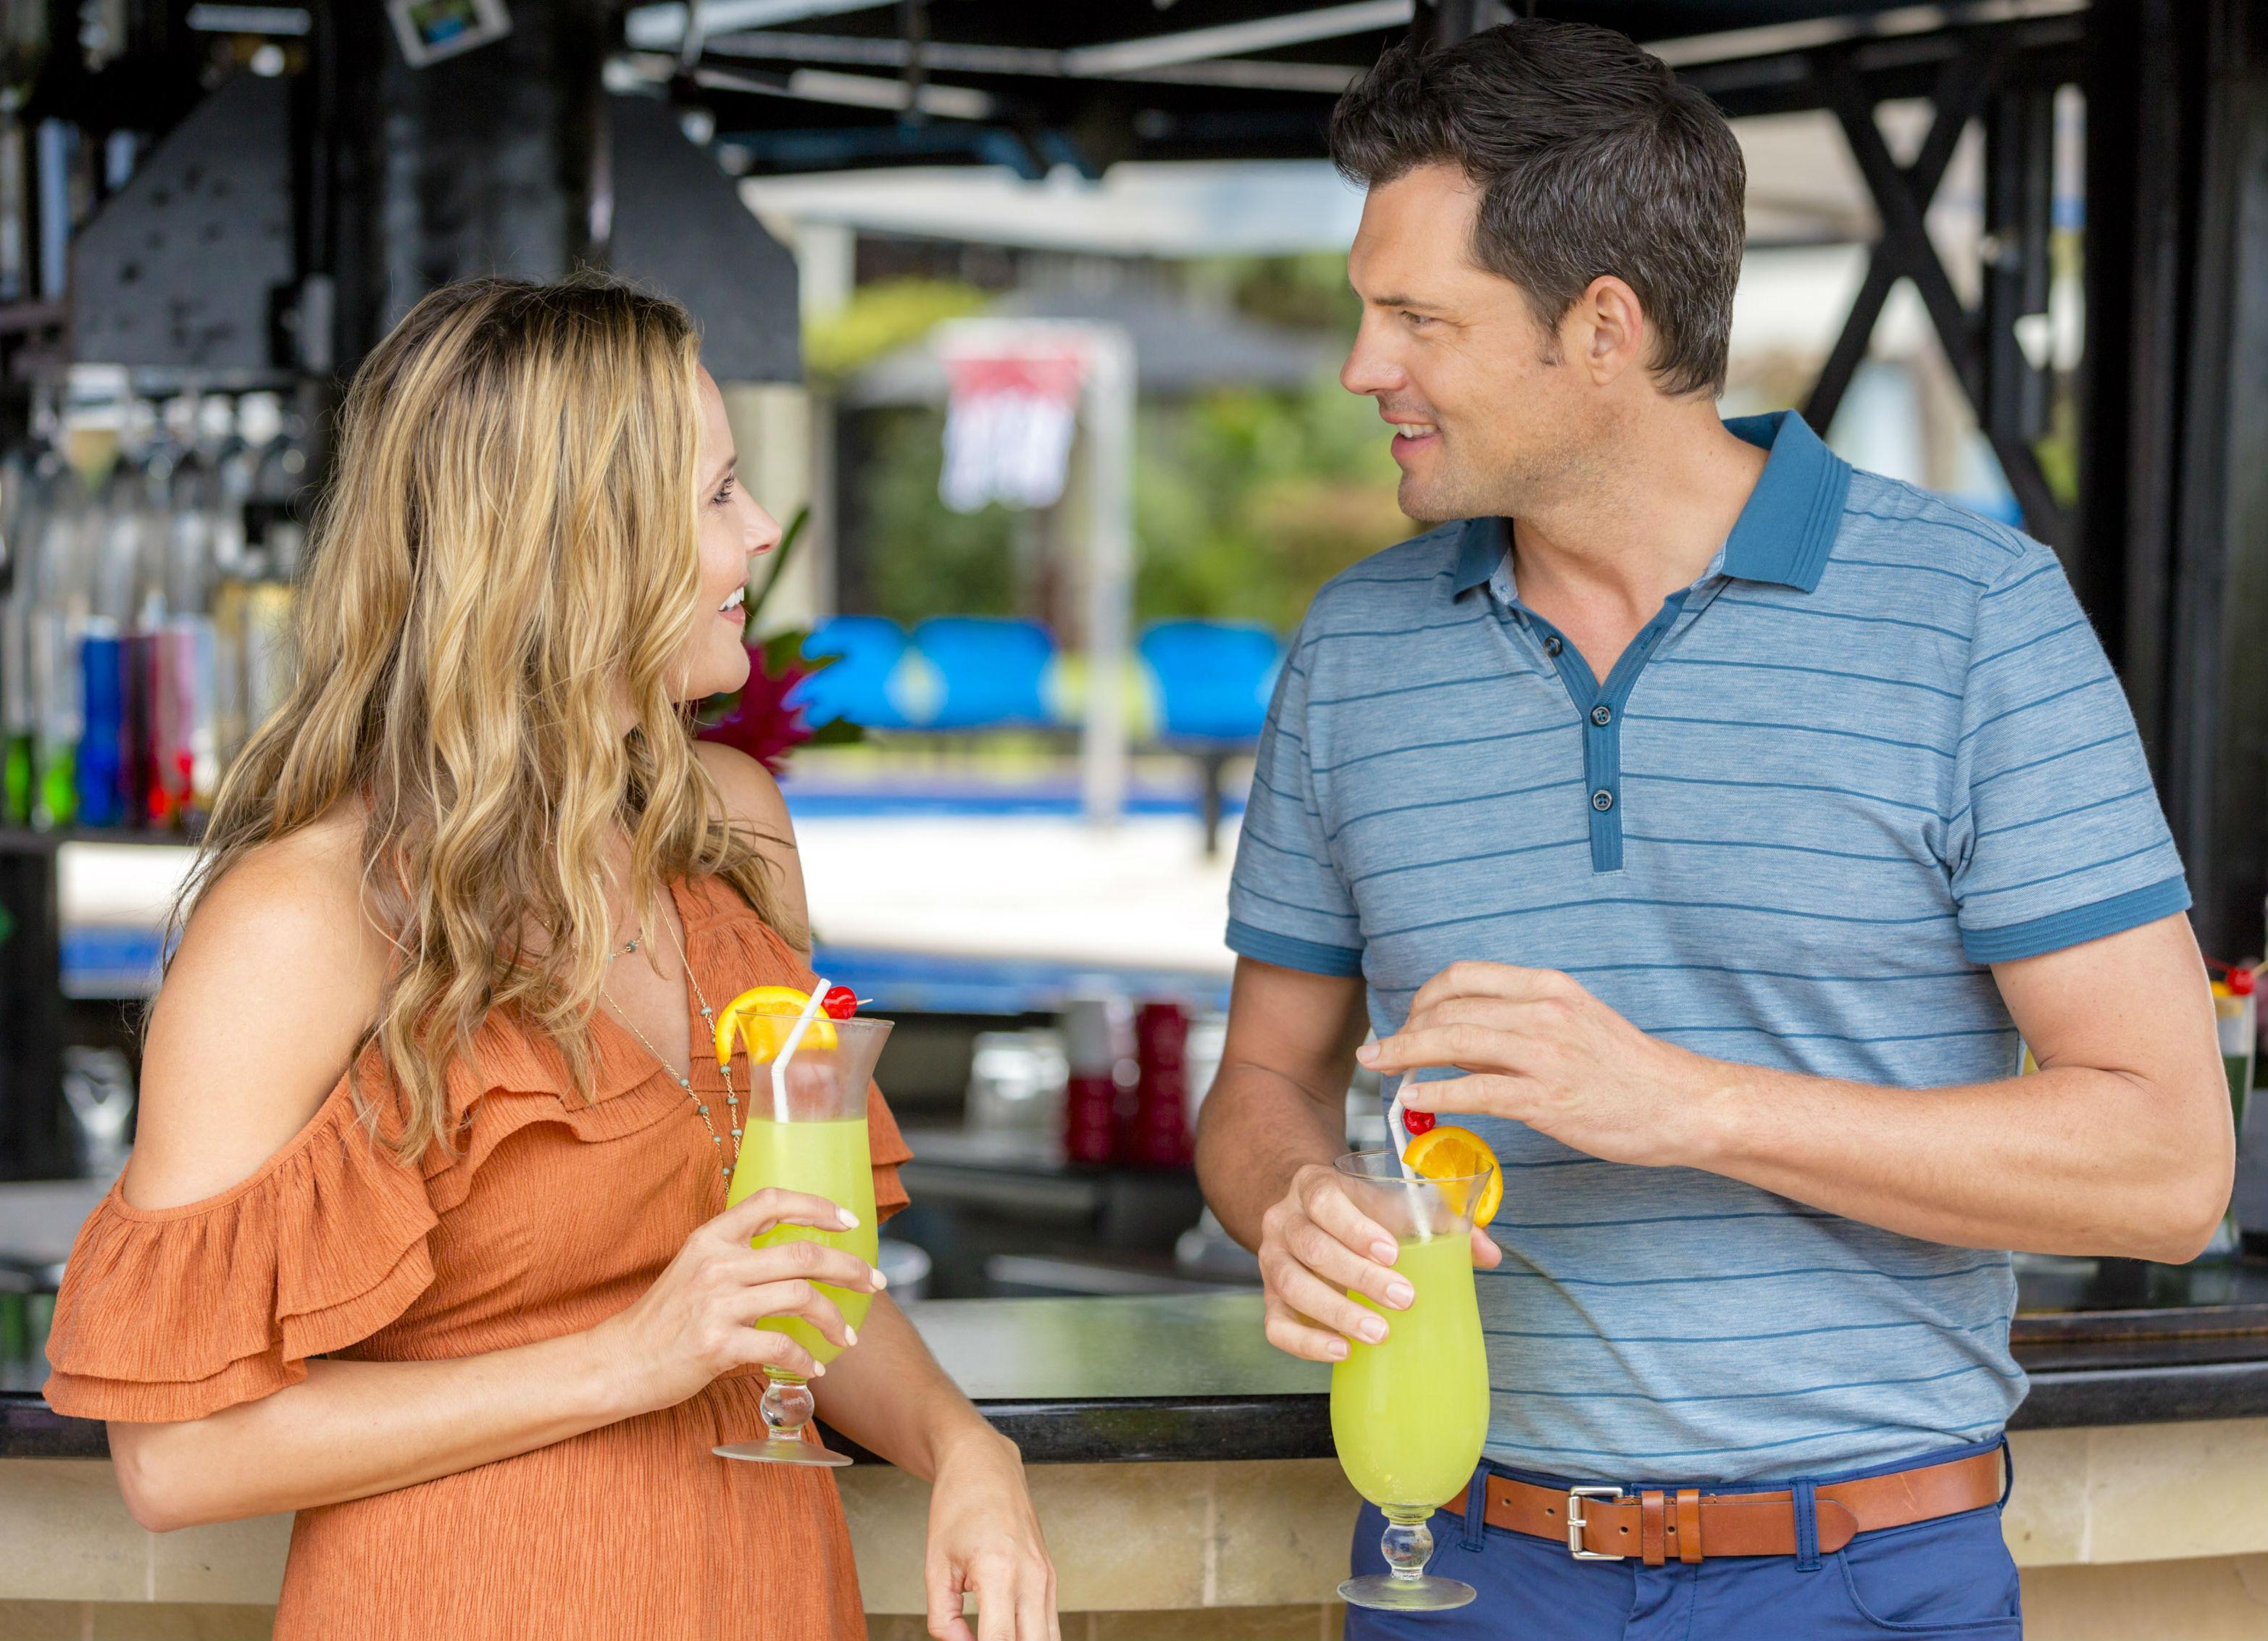 pearl in paradise synopsis